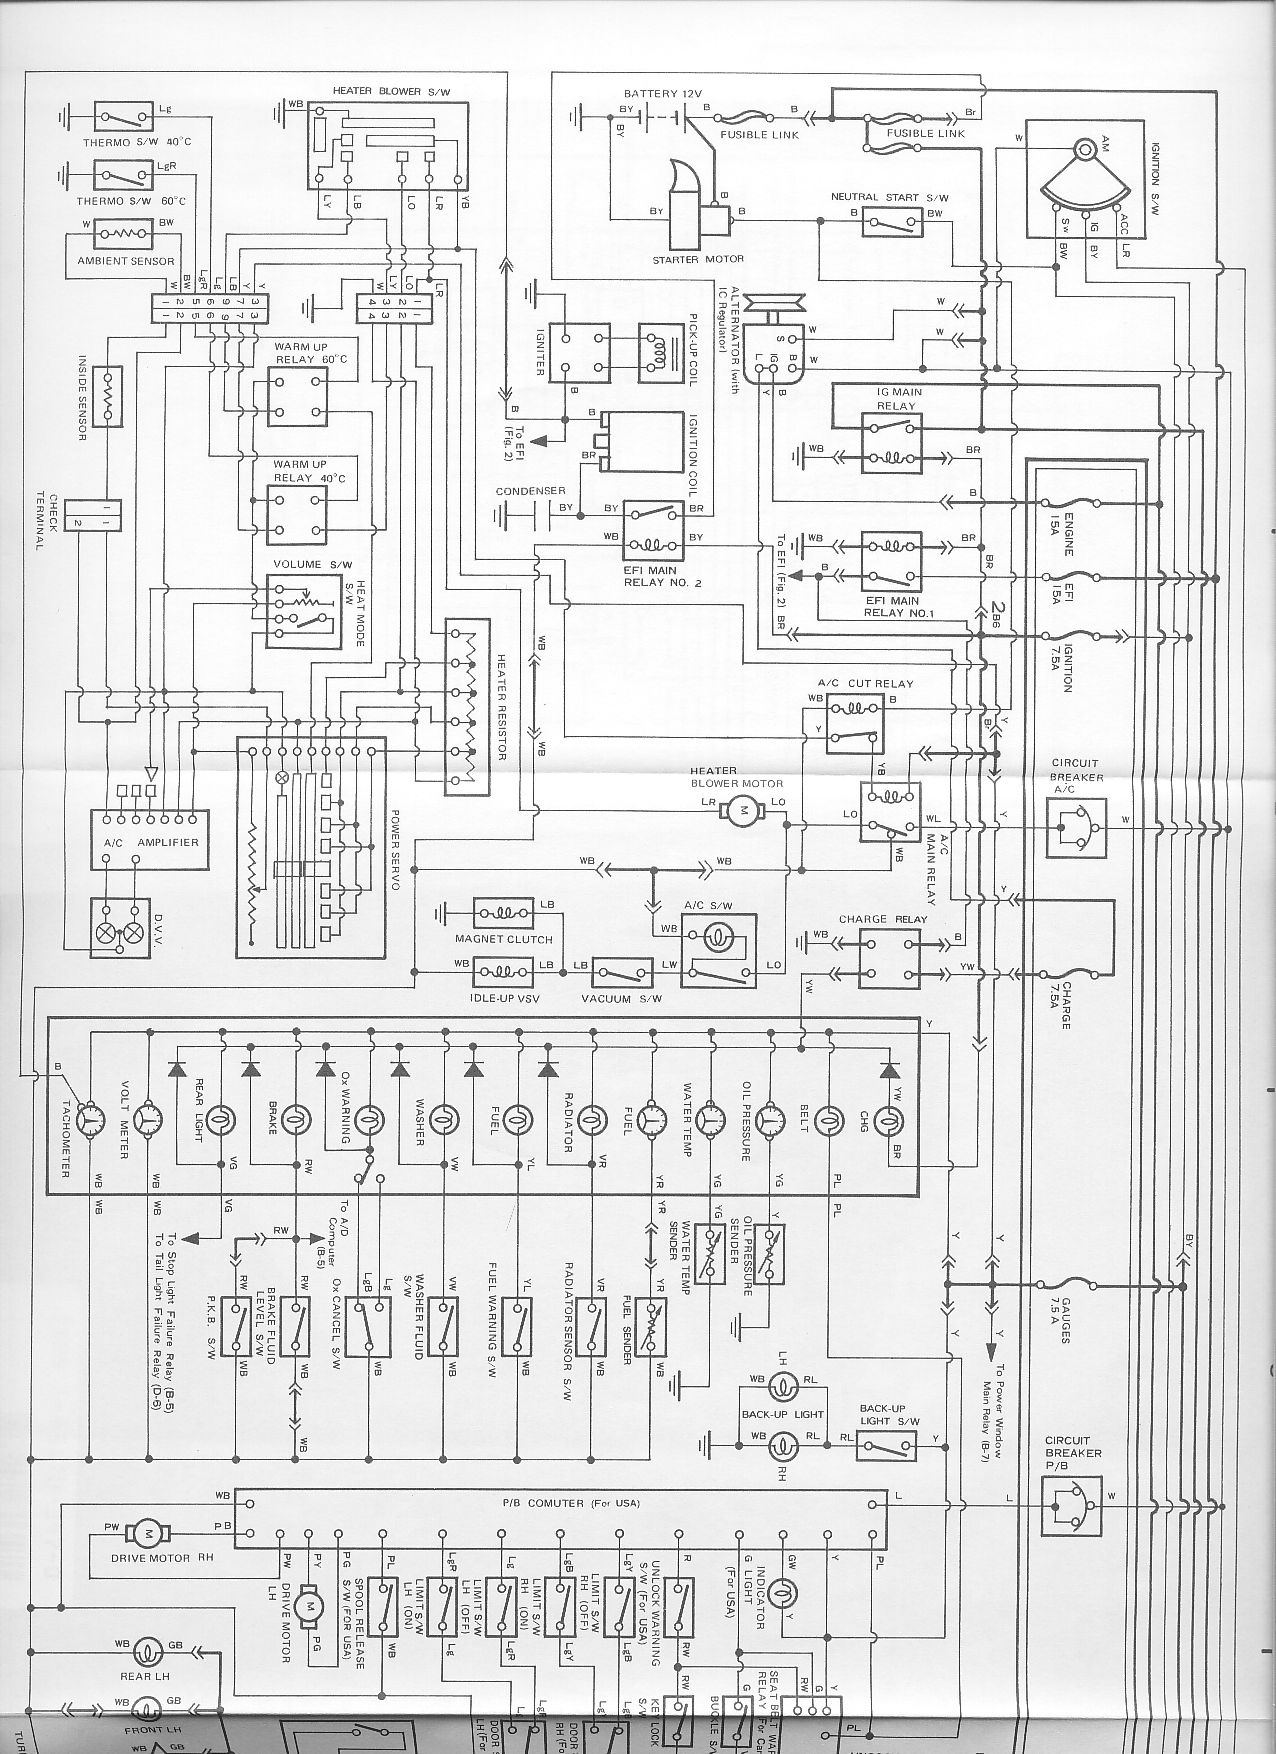 wiring diagram for international truck – readingrat, Wiring diagram